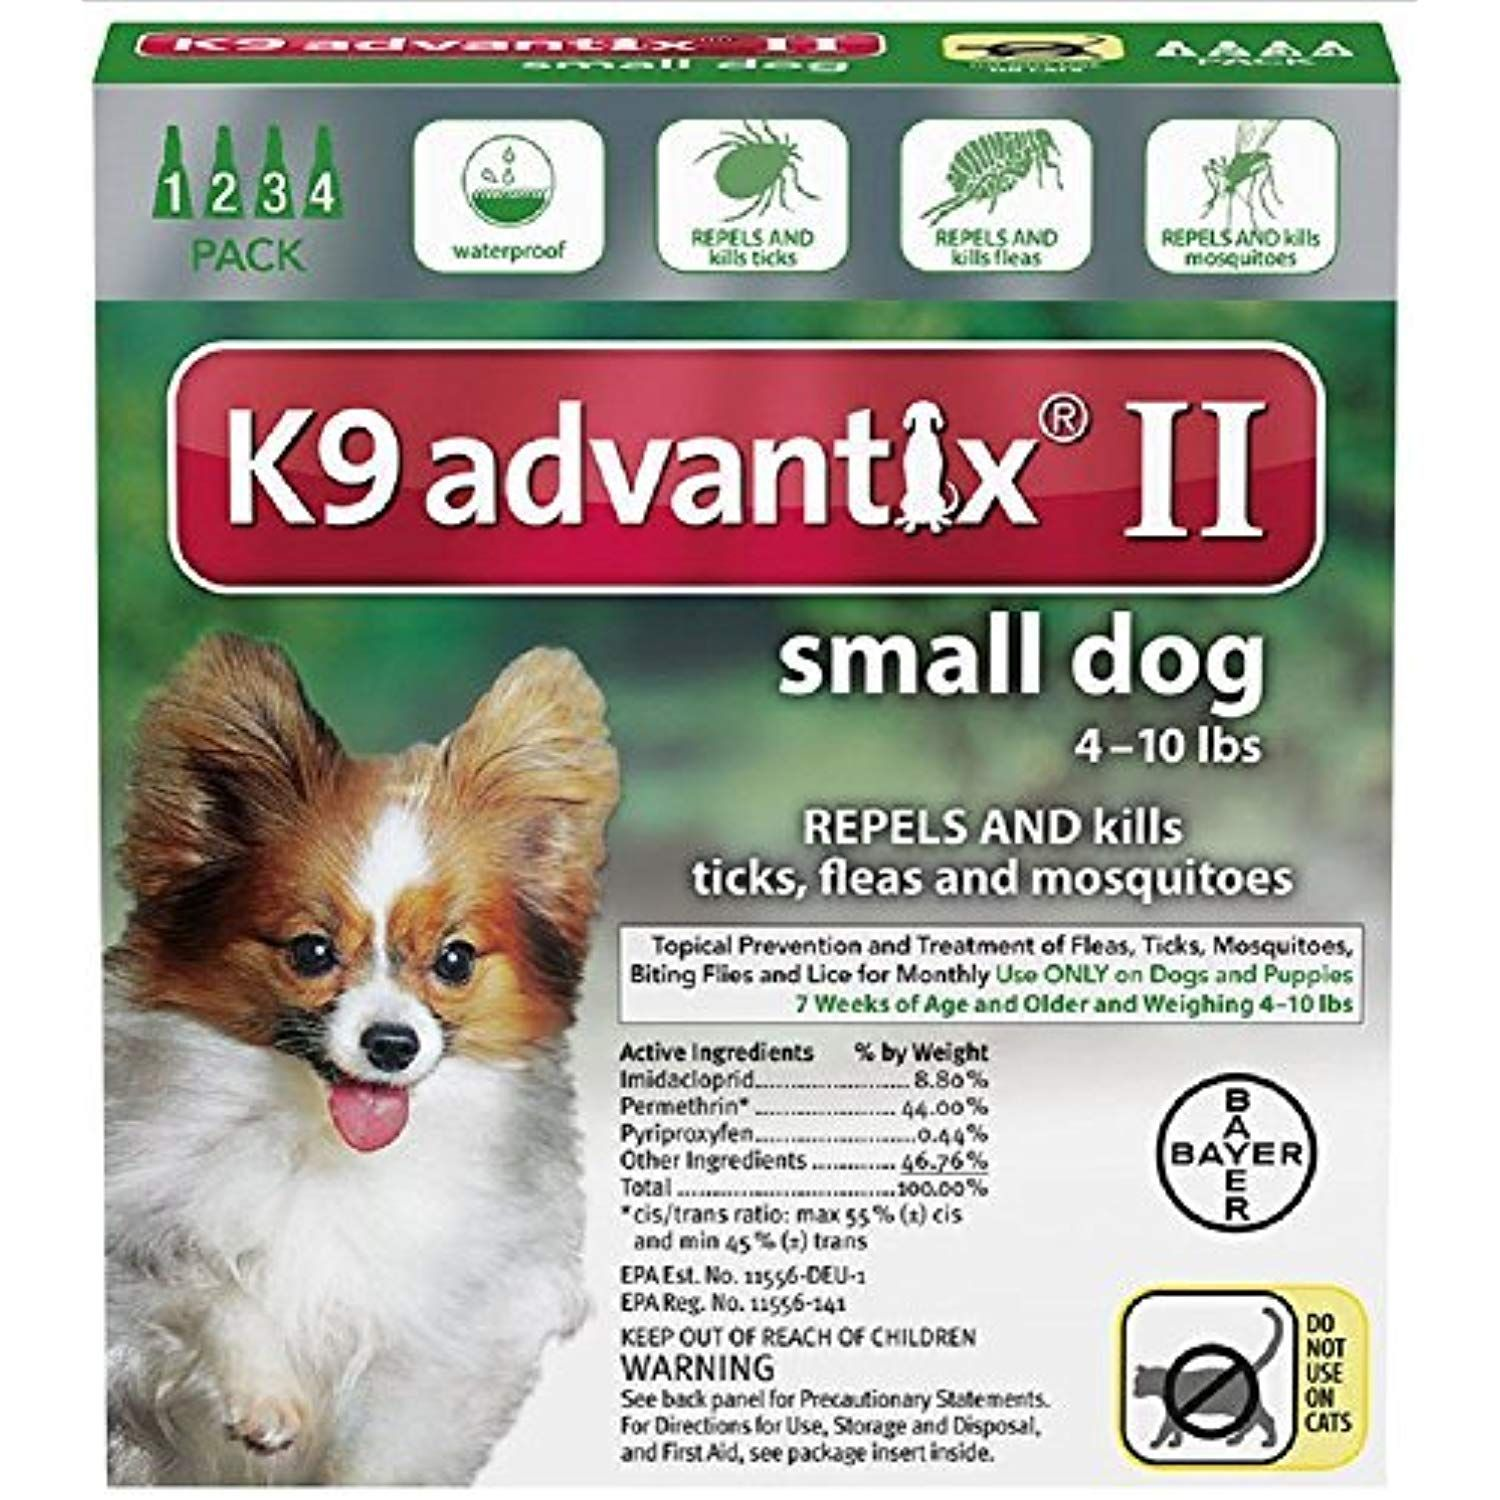 Ax Advantixii Dog 4mon 4 10lb Grn Click Image To Review More Details This Is An Affiliate Link Dogs Kill Fleas On Dogs Small Dogs Fleas